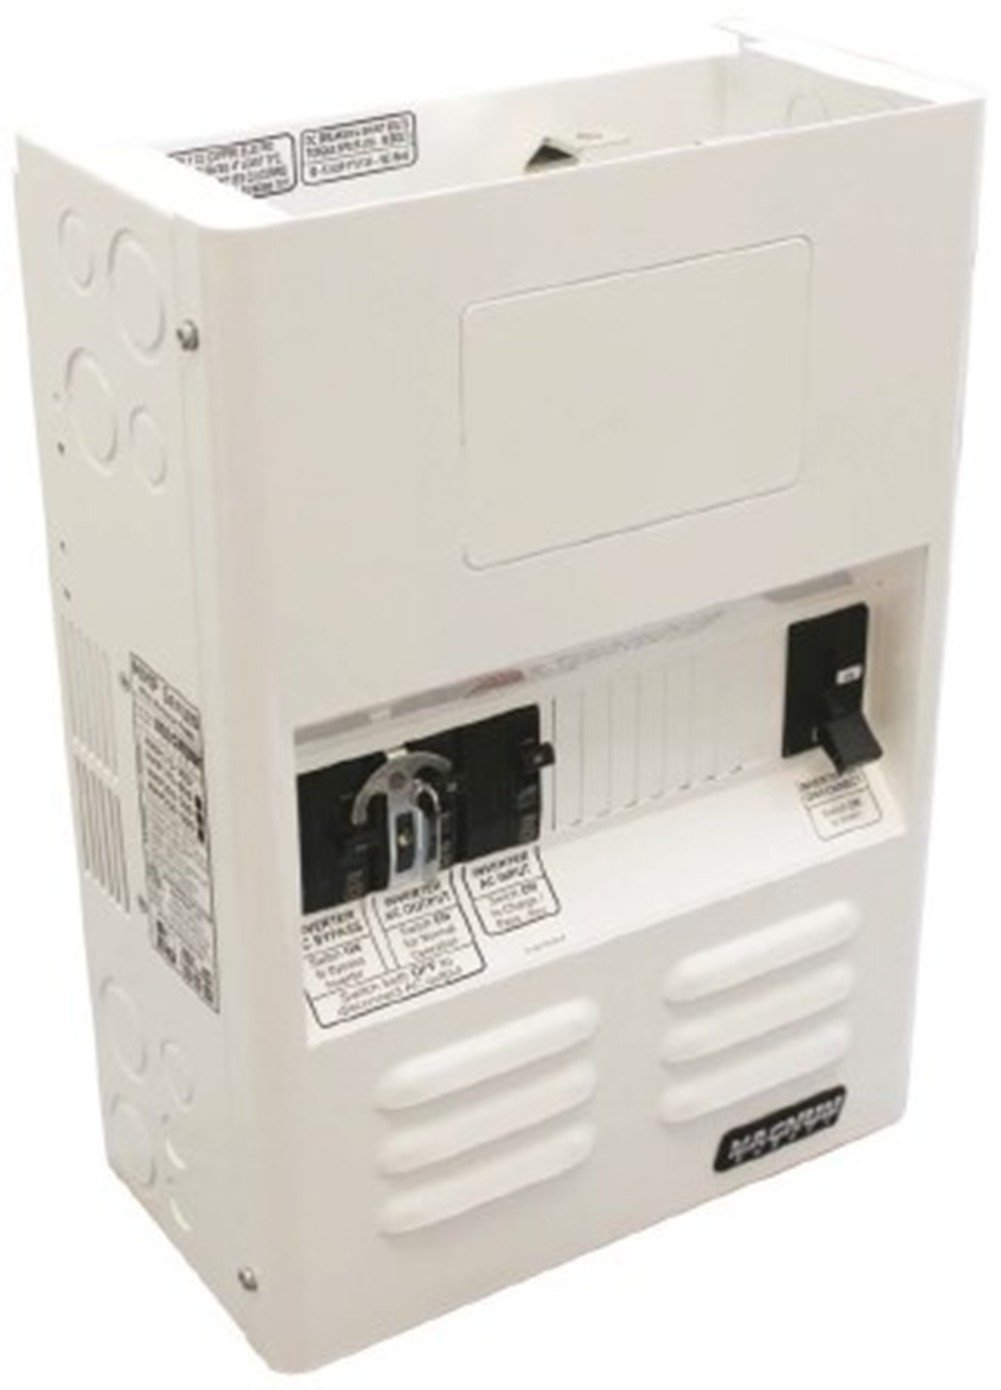 Magnum Energy MMP175-60S MMP Series Mini Magnum Panel with 175A (fits 48 VDC models) DC Breaker and 60A Single Pole AC Input Breaker, Battery/inverter DC disconnect breaker (175 or 250 amps), Inverter AC input overcurrent protection breakers by Magnum Energy